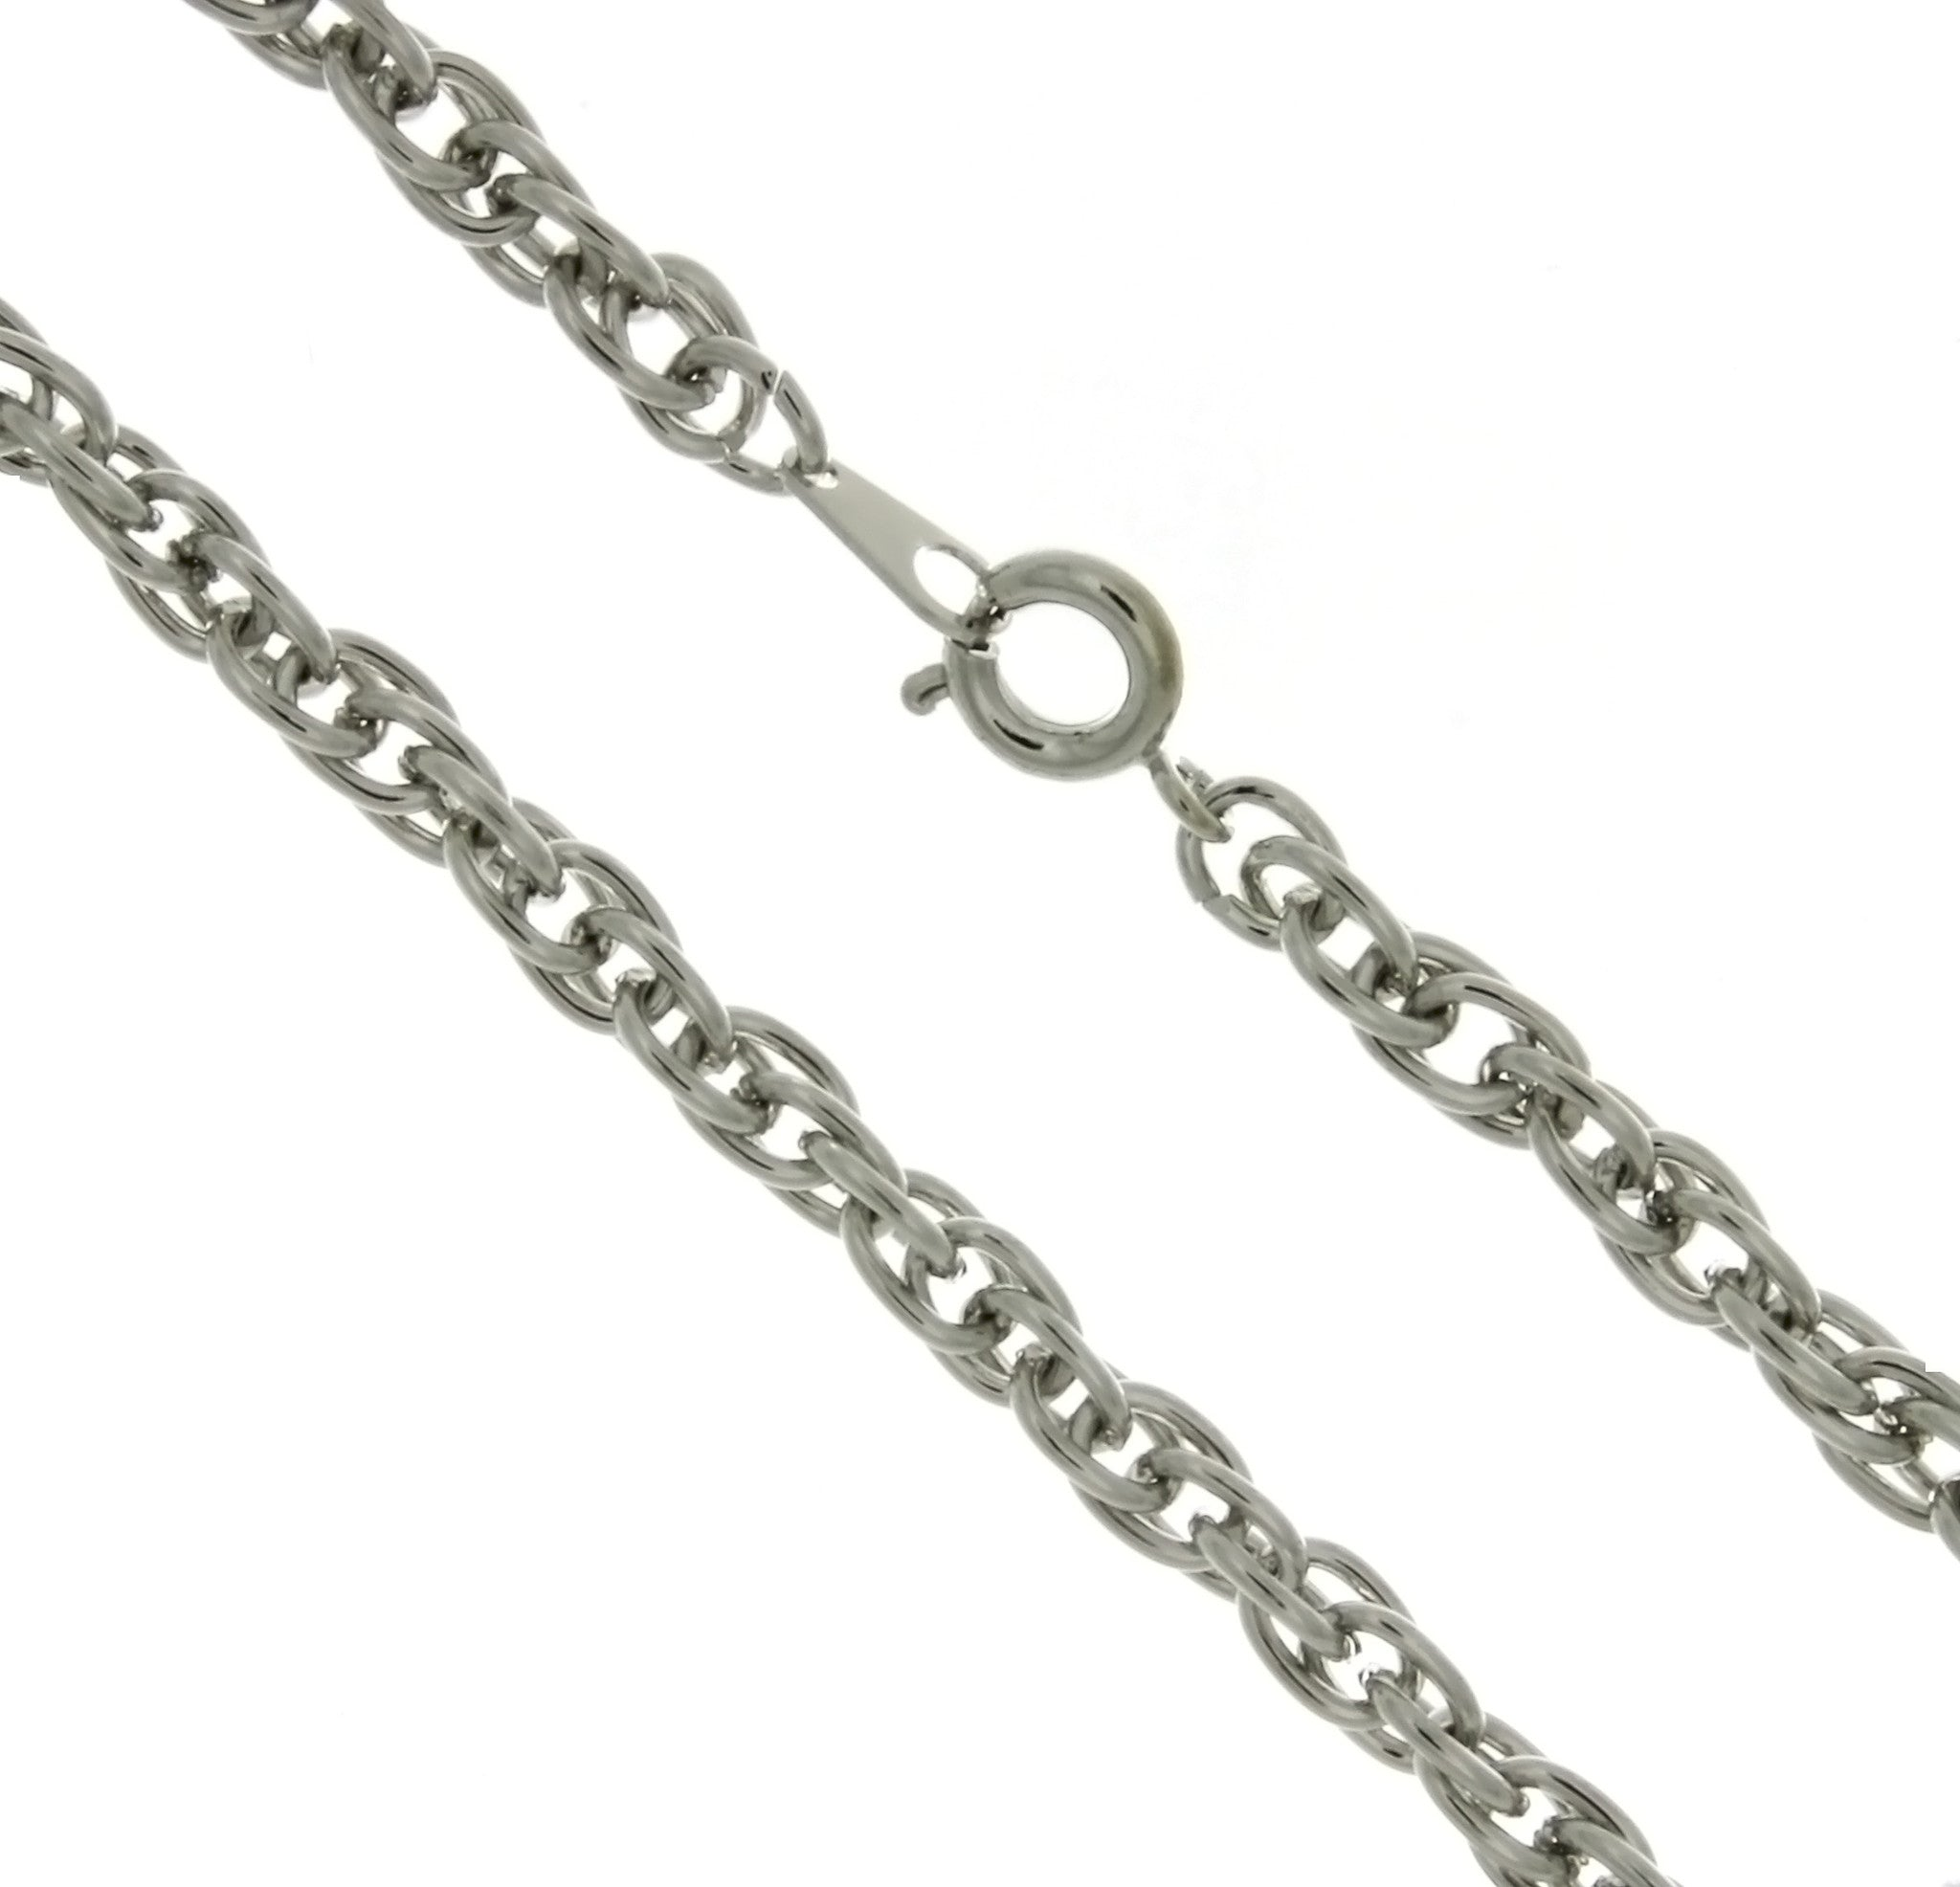 CHAIN NECKLACE ROPE SILVER 4 MM X 18 IN (DOZ)